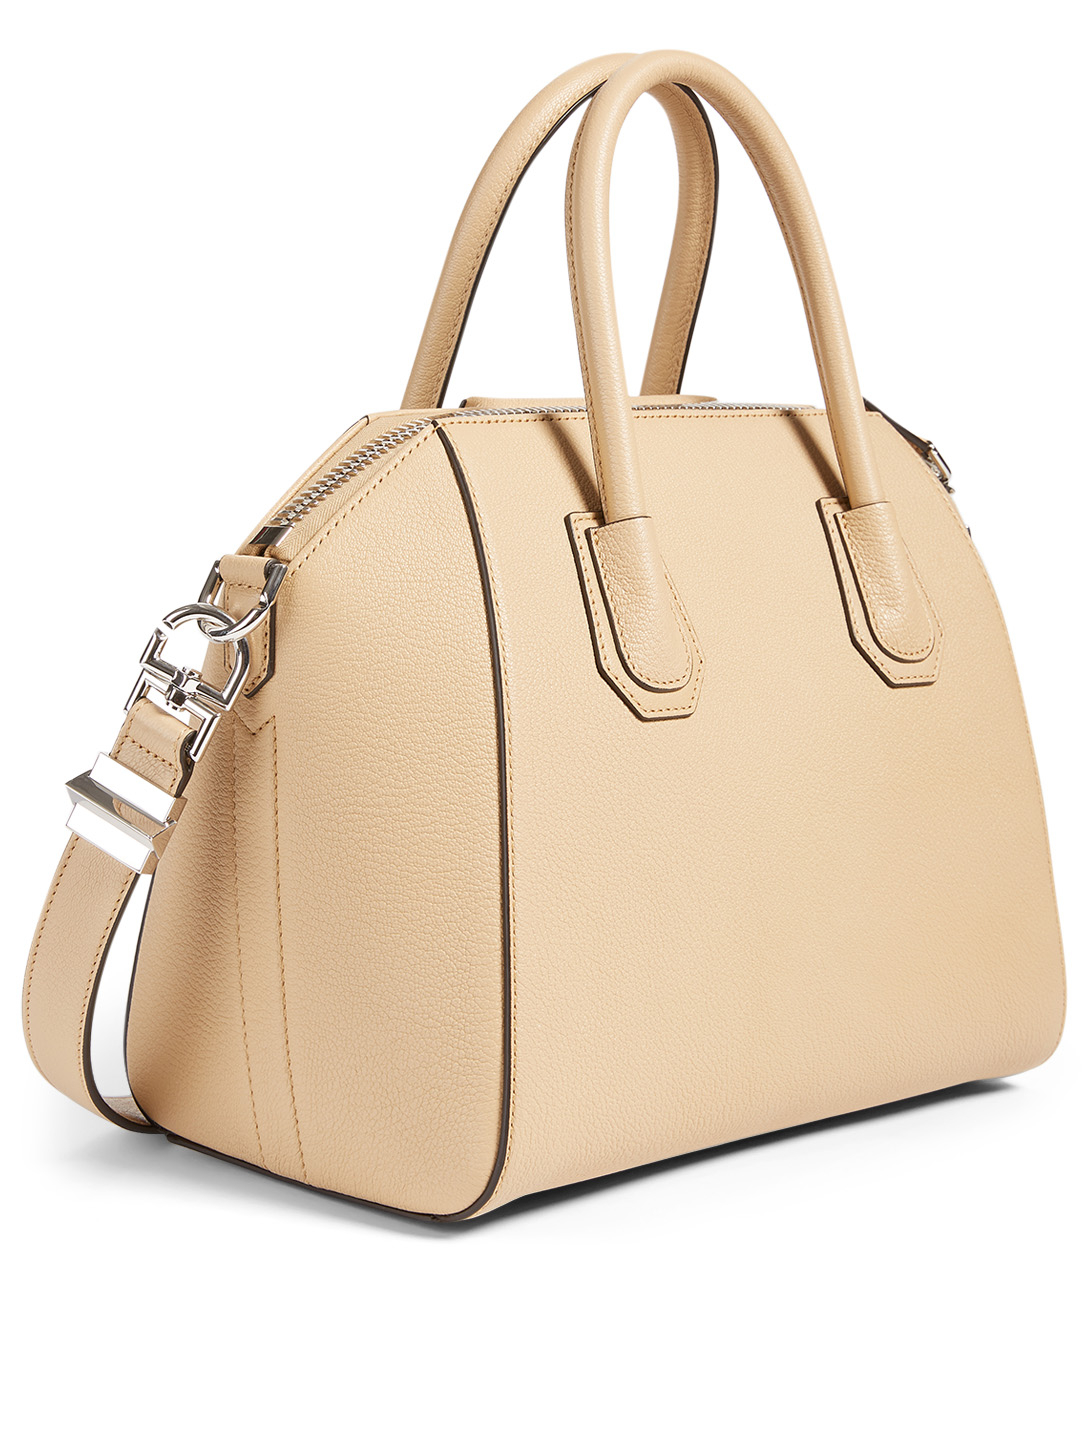 GIVENCHY Small Antigona Leather Bag Women's Beige